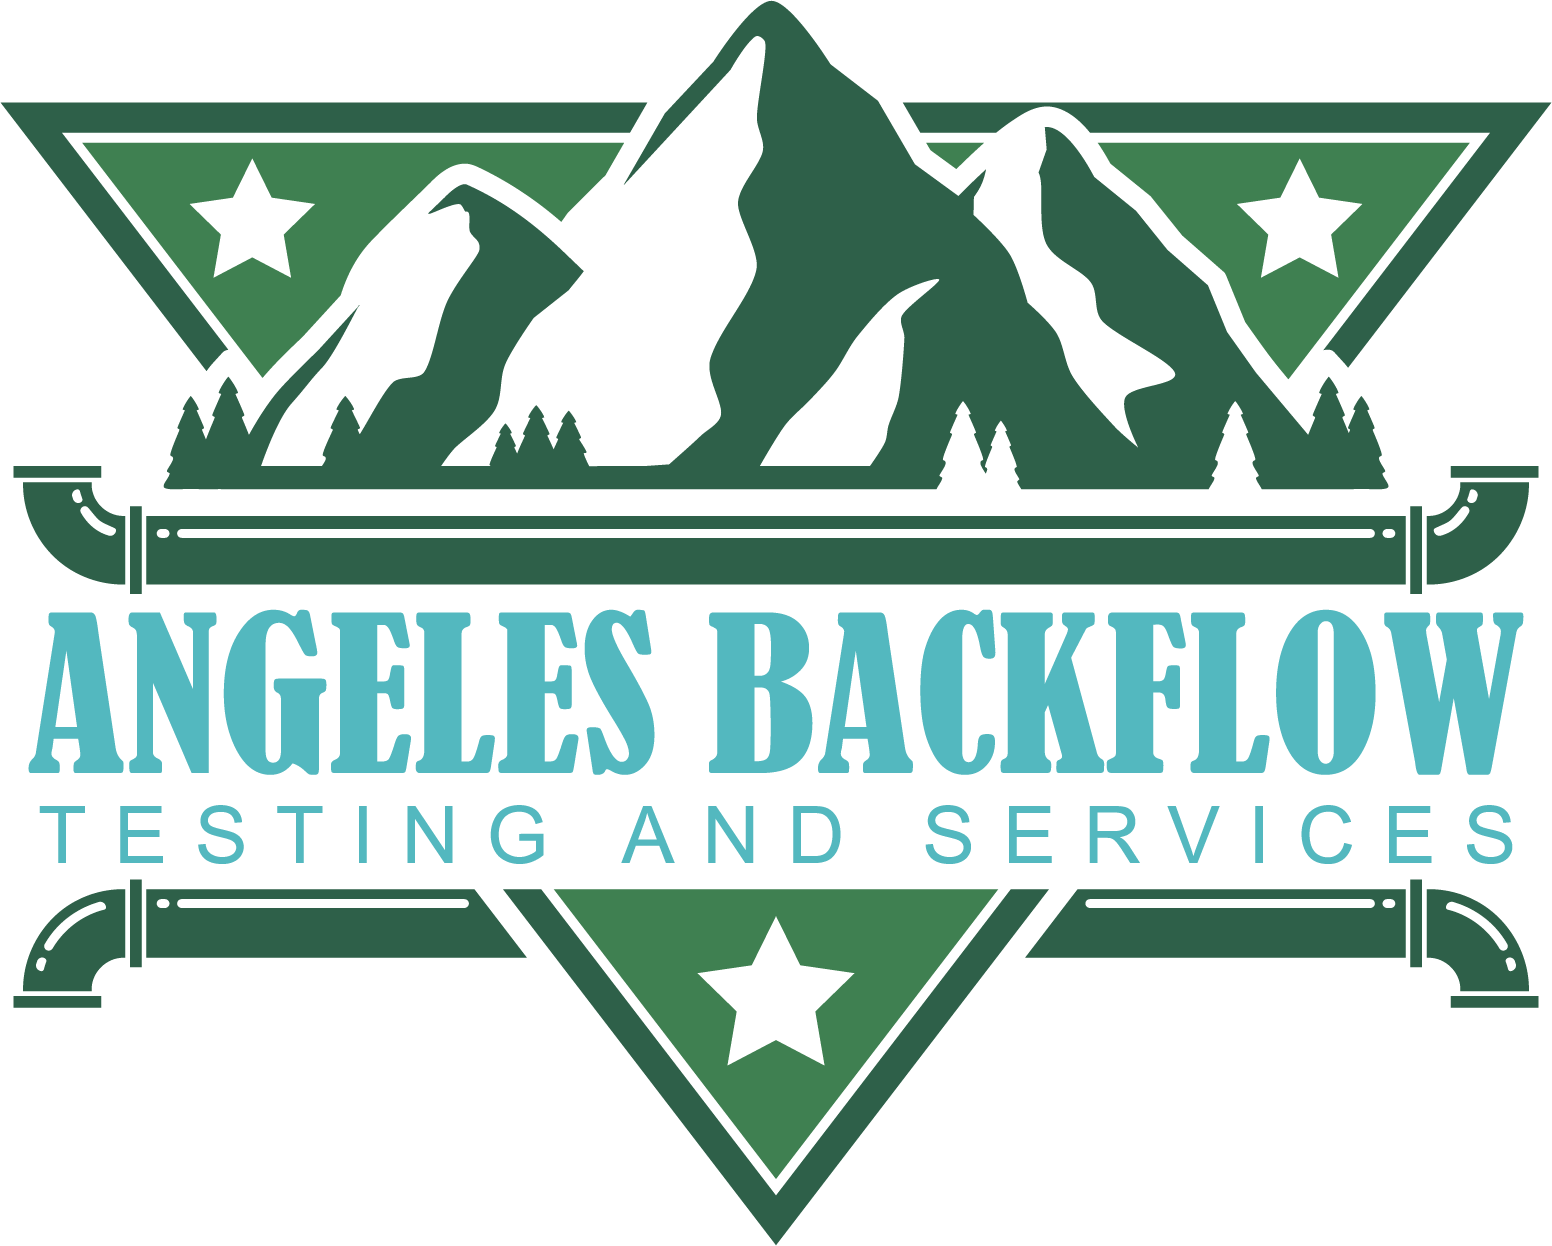 Angeles Backflow Testing and Services